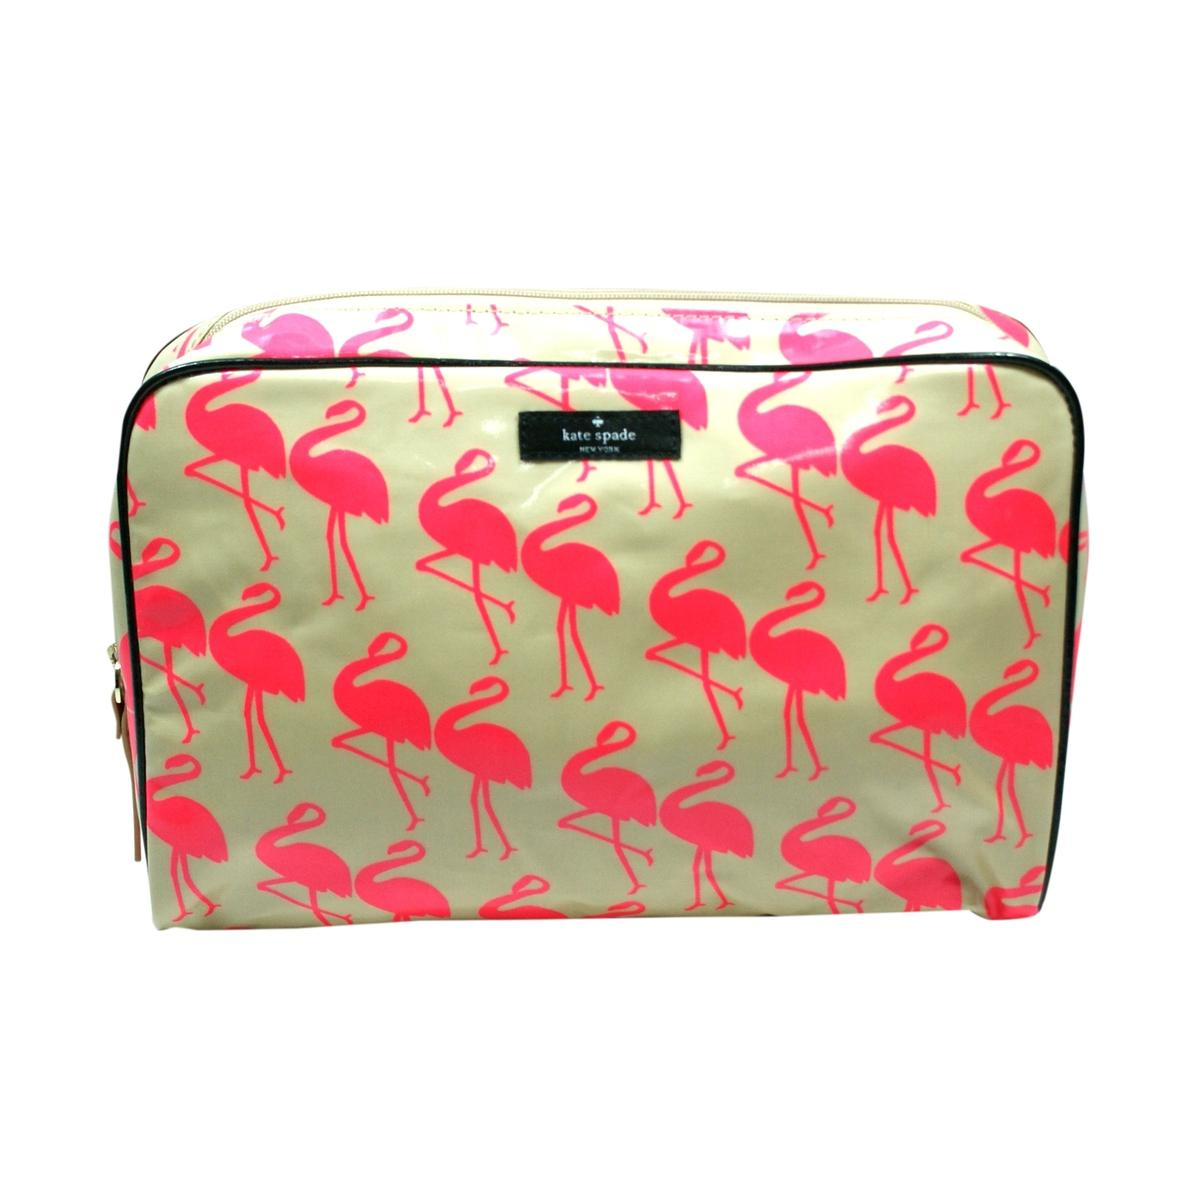 Kate Spade Large Henrietta Daycation Flamingo Cosmetic Bag